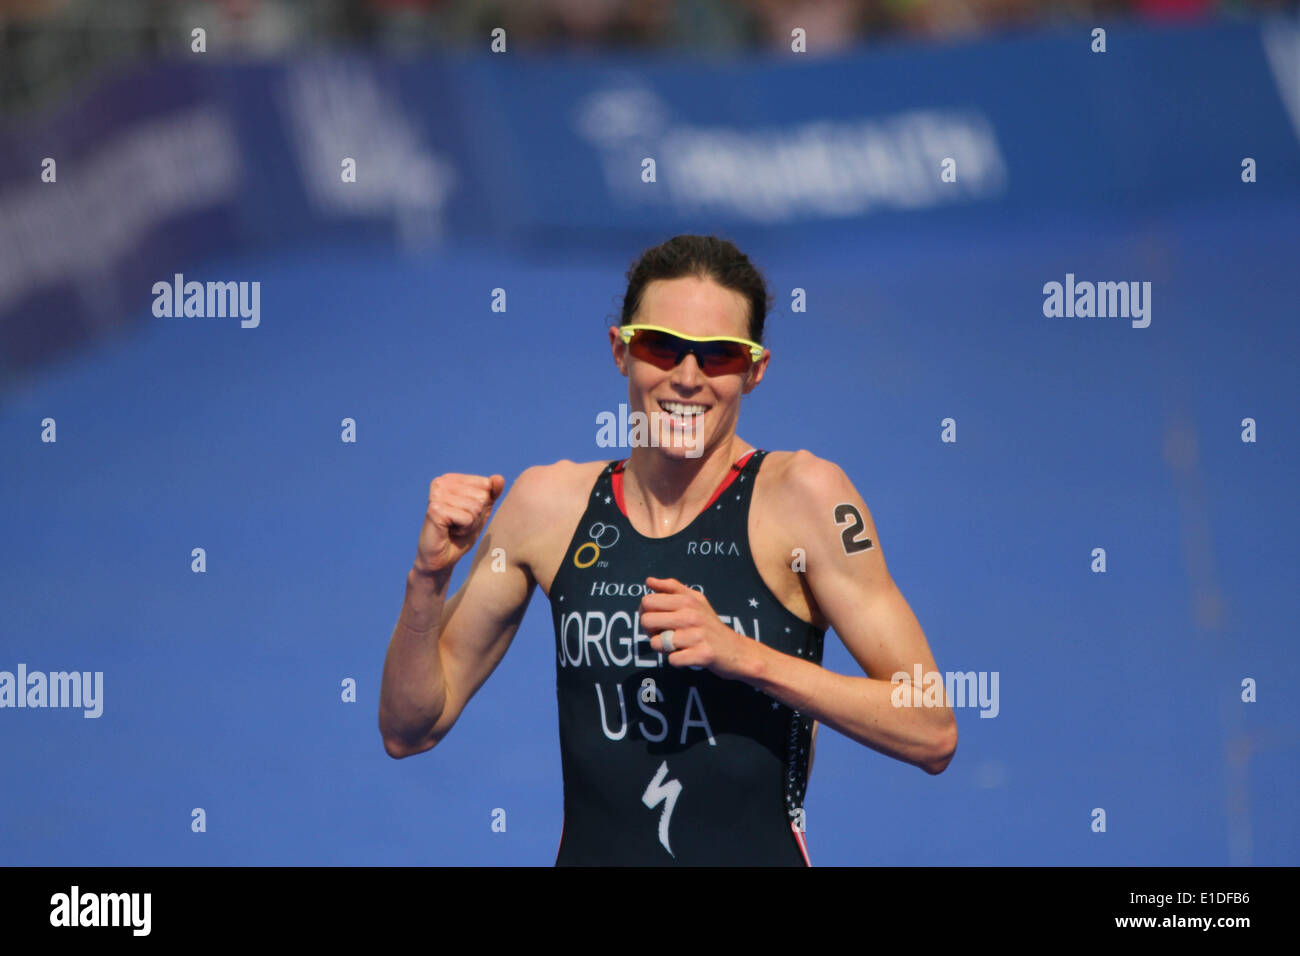 London, UK. 31st May, 2014. Gwen Jorgensen of USA wins the women elite ITU Triathlon held in London. Credit:  petericardo lusabia/Alamy Live News - Stock Image